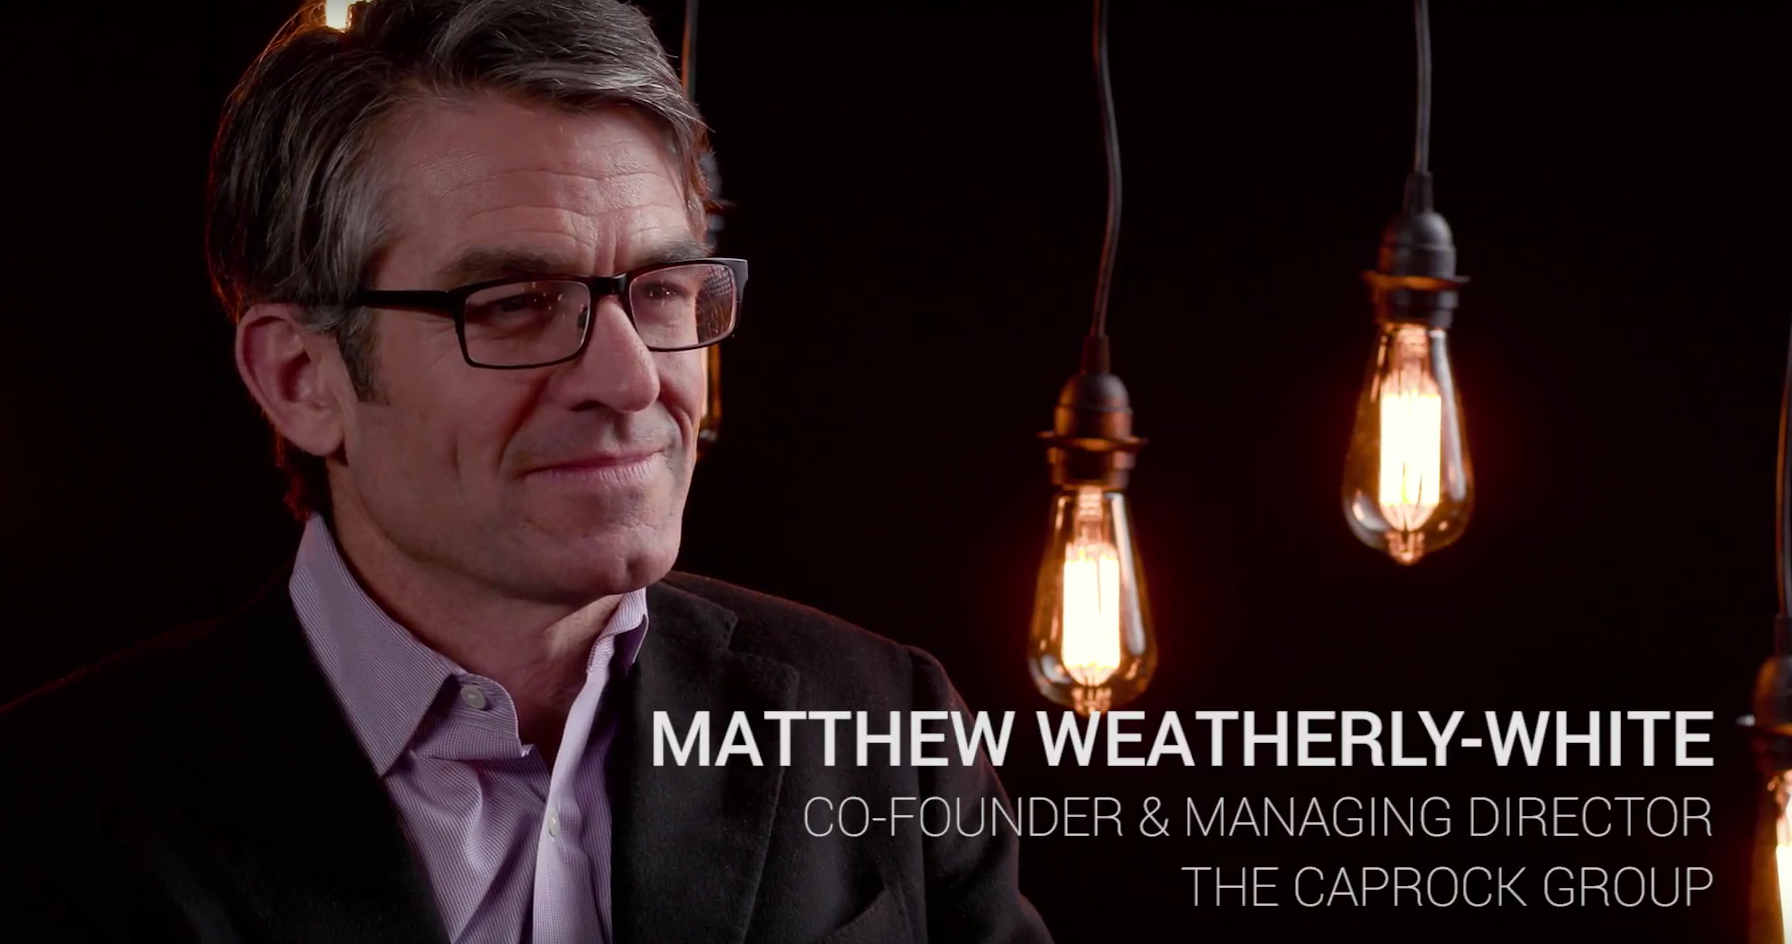 matthew-weatherly-white-cofounder-managing-director-caprock-group.png